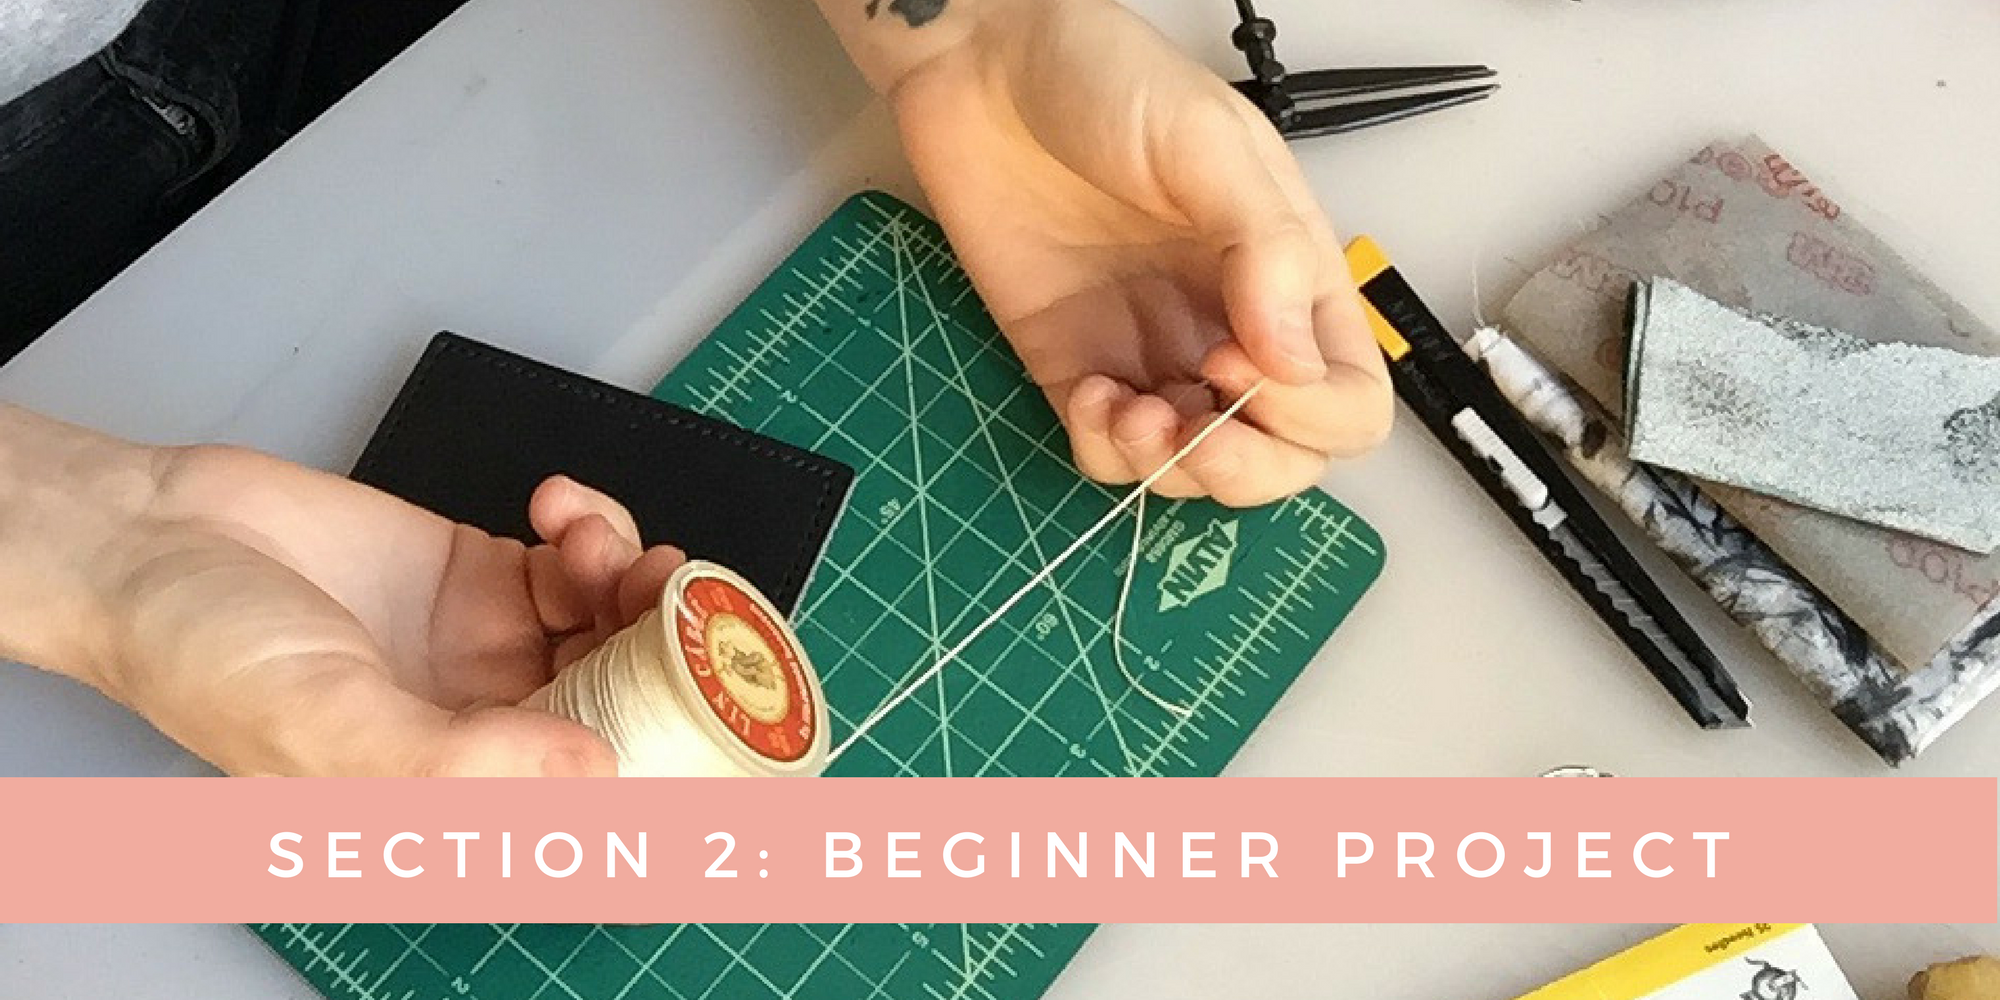 SECTION 2: Beginner Project Mousepad/trivet - Once you have completed the beginner mousepad project, you will know how to complete the 6 basics steps to any basic leathergood.You will learn proper methods for cutting leather, creating stitching guidelines, creating stitching holes using stitching chisels, saddle-stitching and edge finishing.